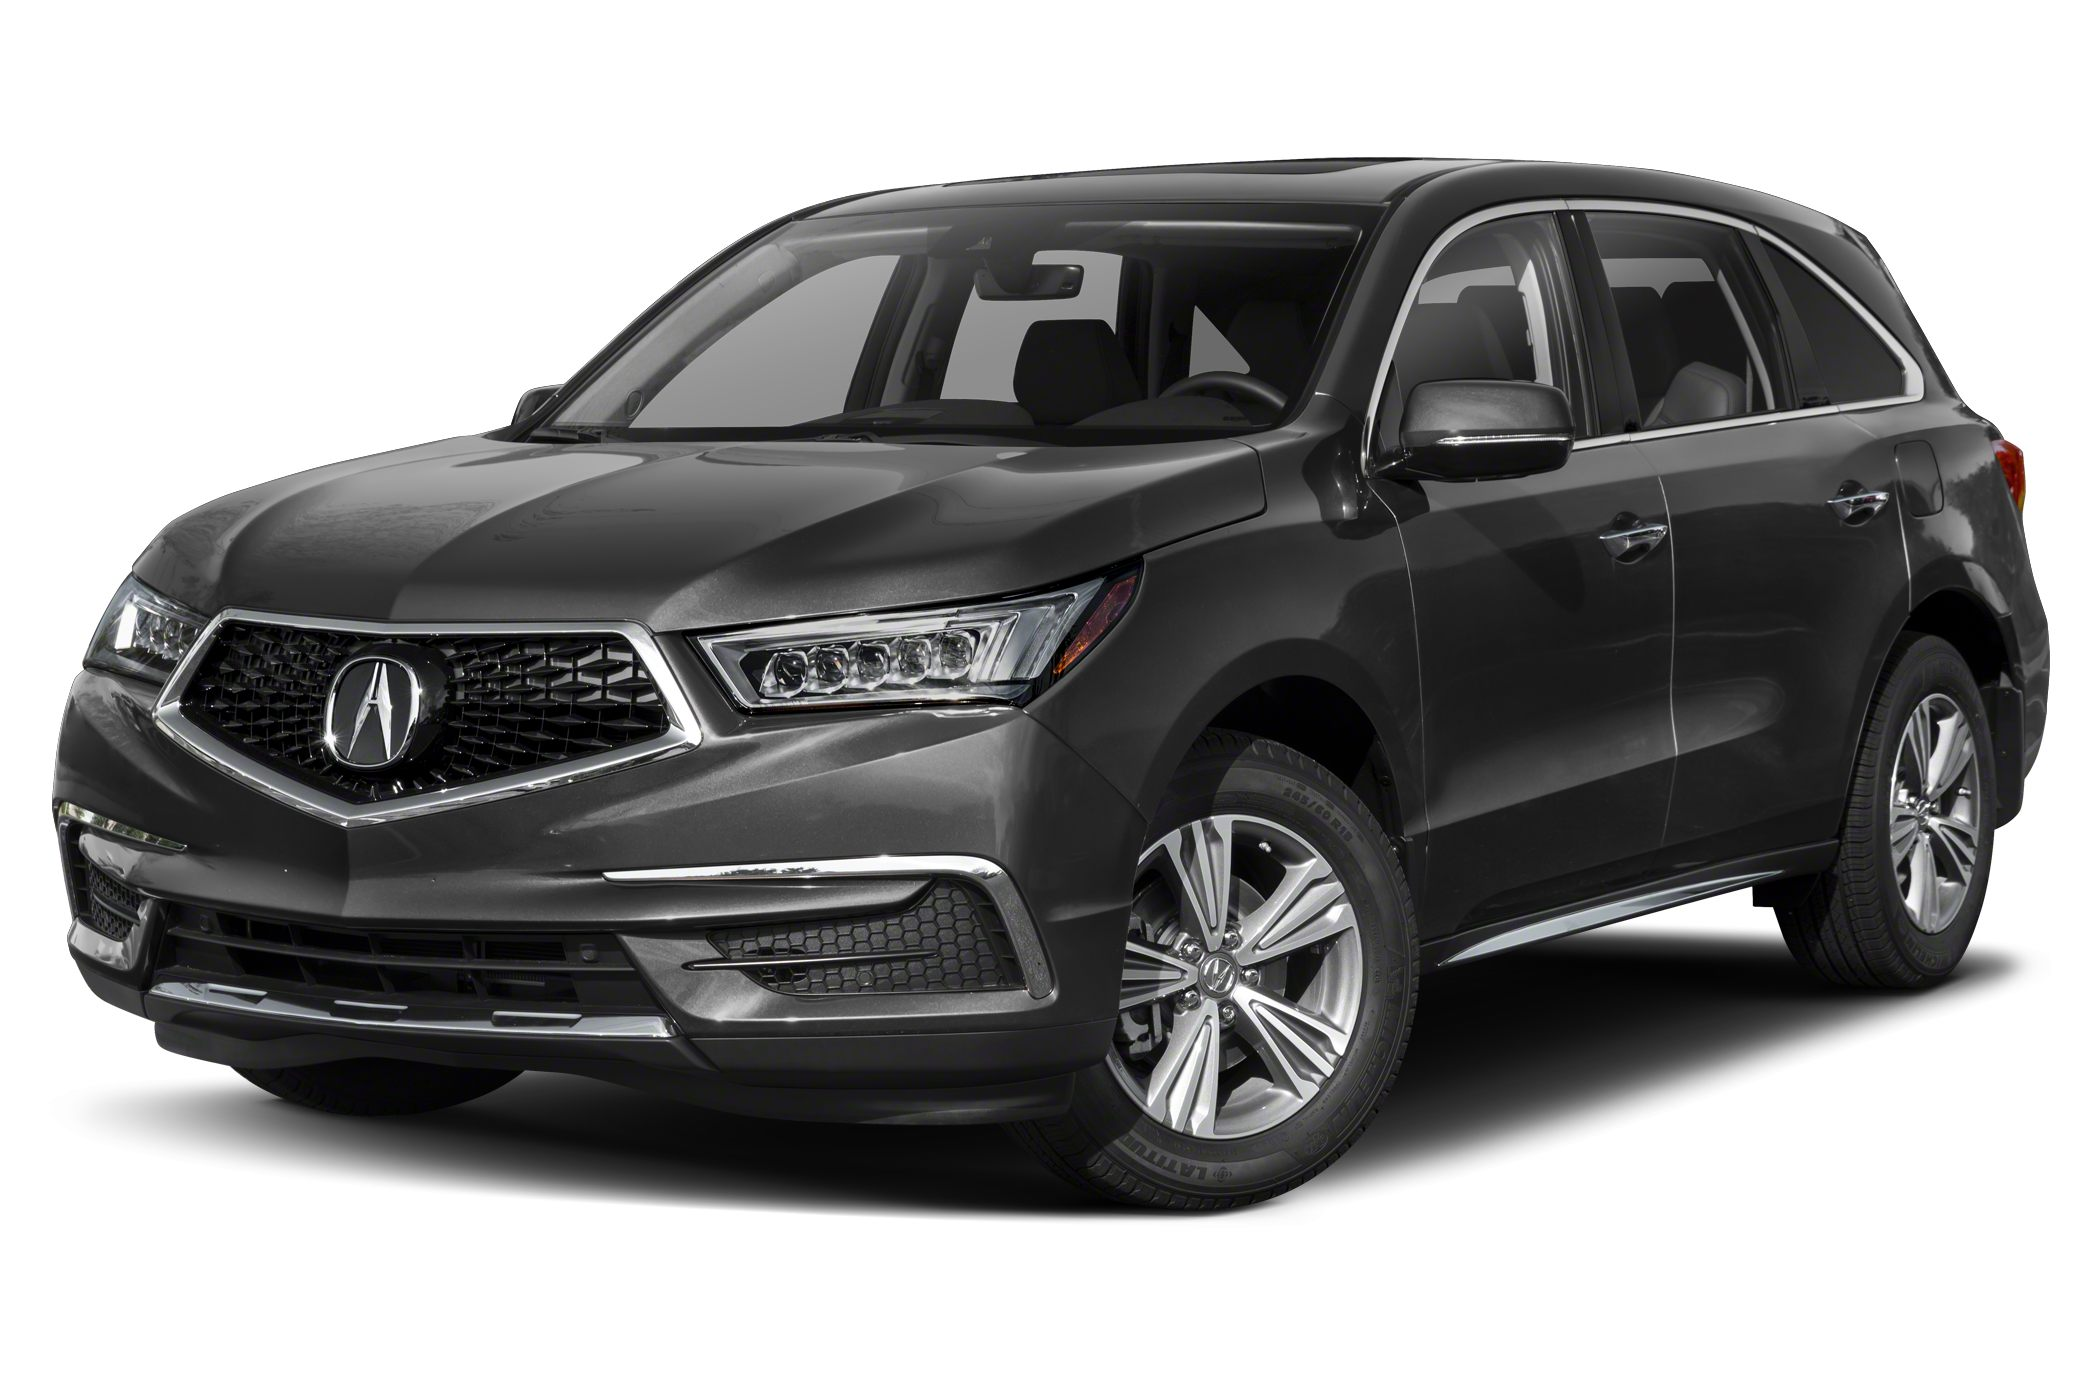 2014 Acura MDX priced from $42,290*